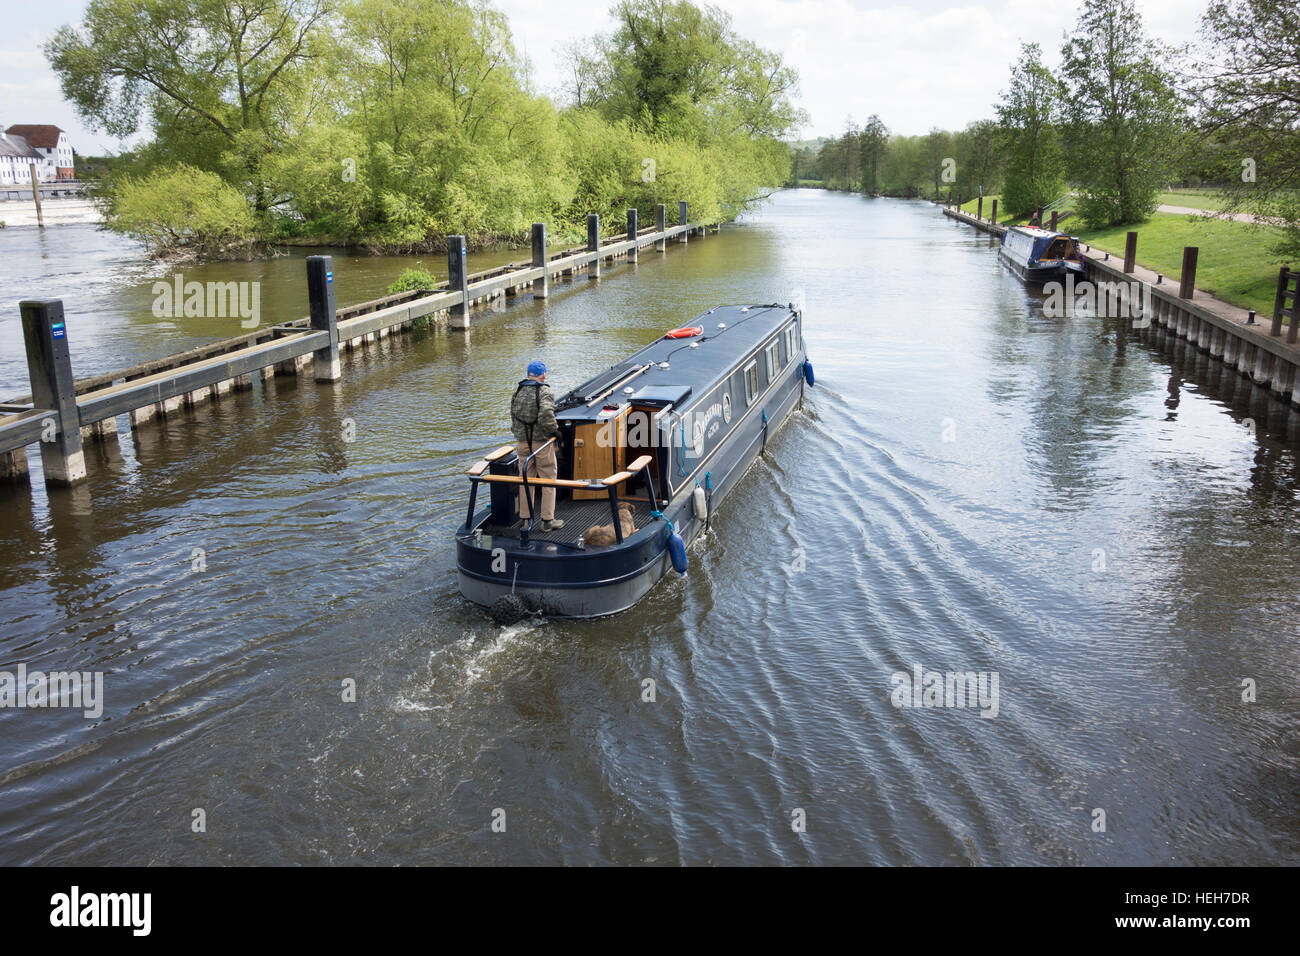 A narrow boat cruising on the river Thames at Hambleden lock, Berkshire, England, UK - Stock Image